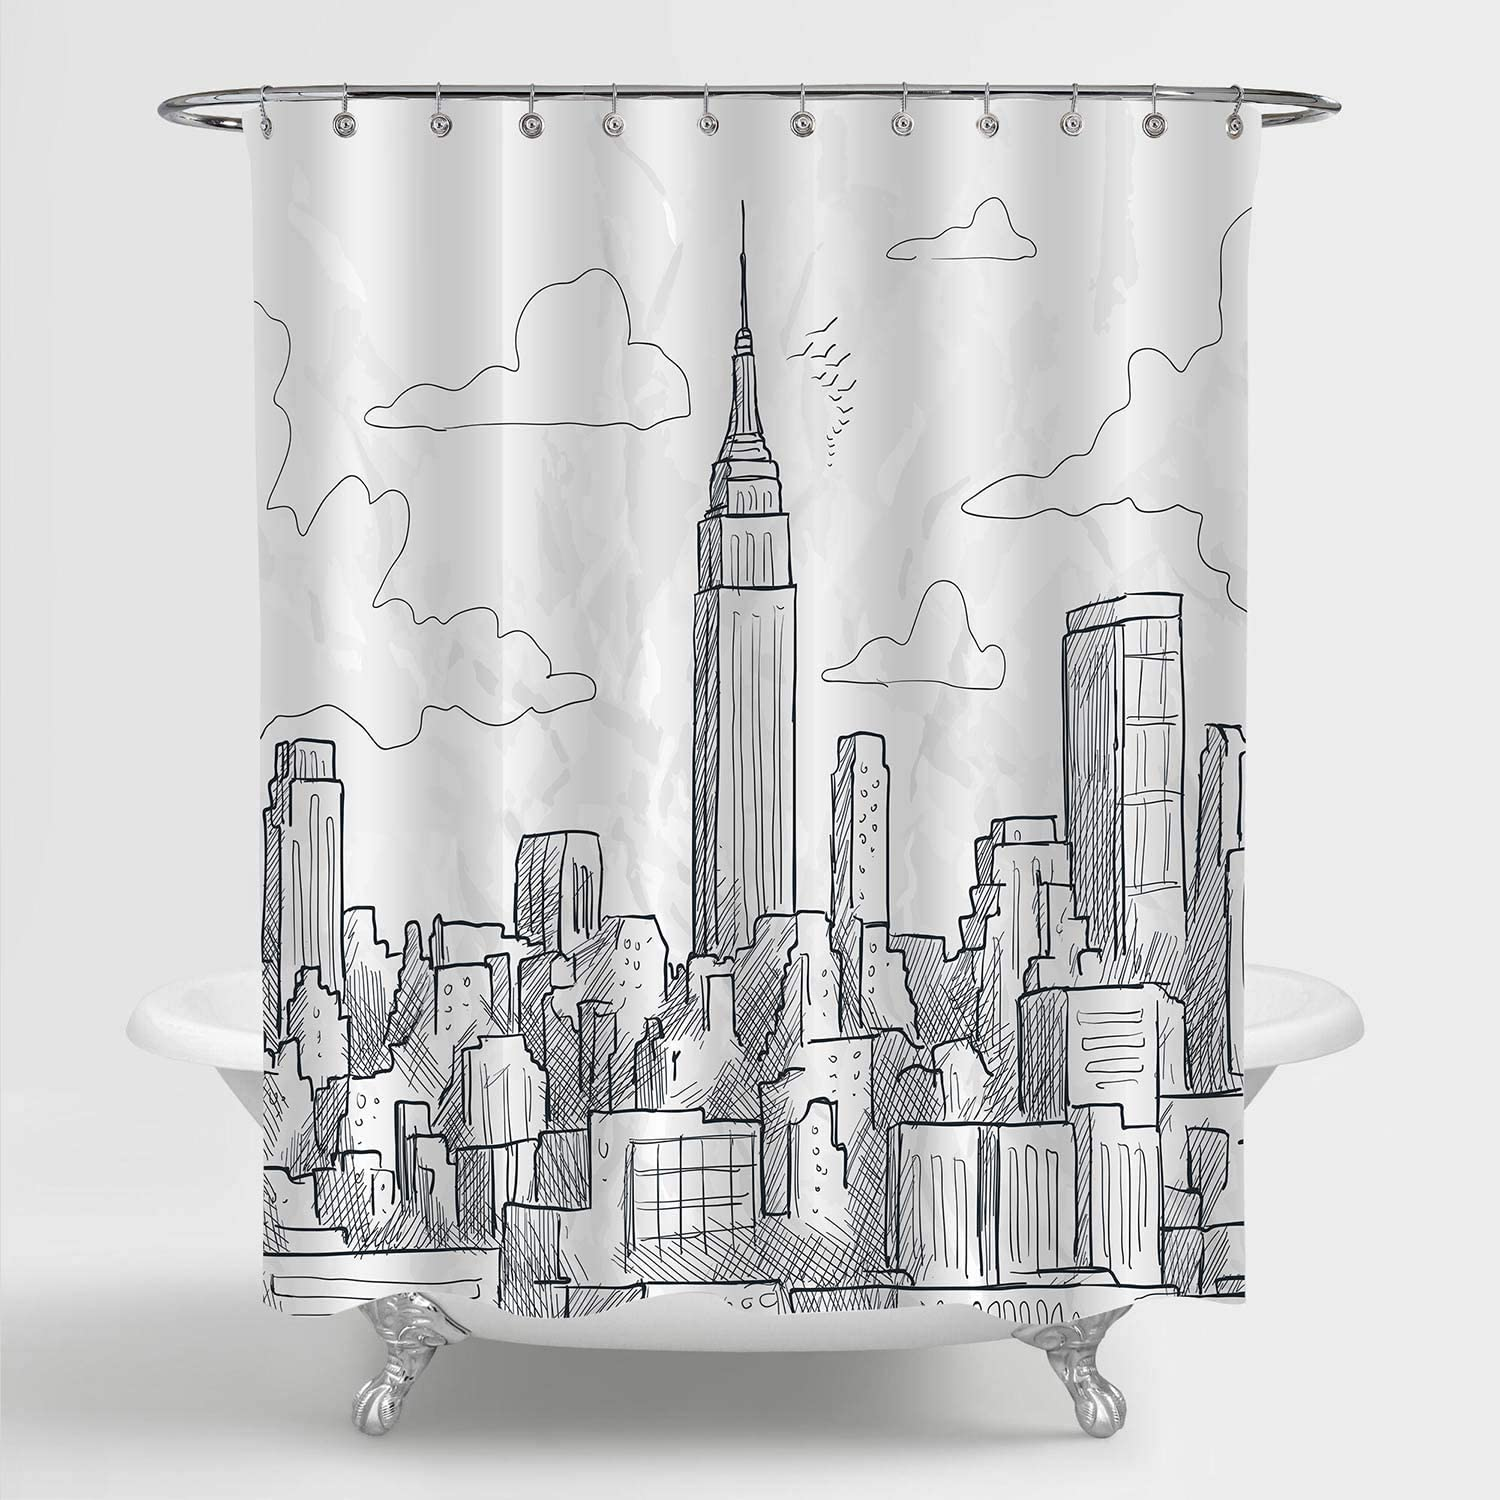 Amazon Com Mitovilla Nyc Skyline Shower Curtain Set Sketchy New York Landmark Empire State Building And Skyscrapers Skyline Scenic Artwork For Modern Bathroom Decor Black And White 72 W X 72 L Standard